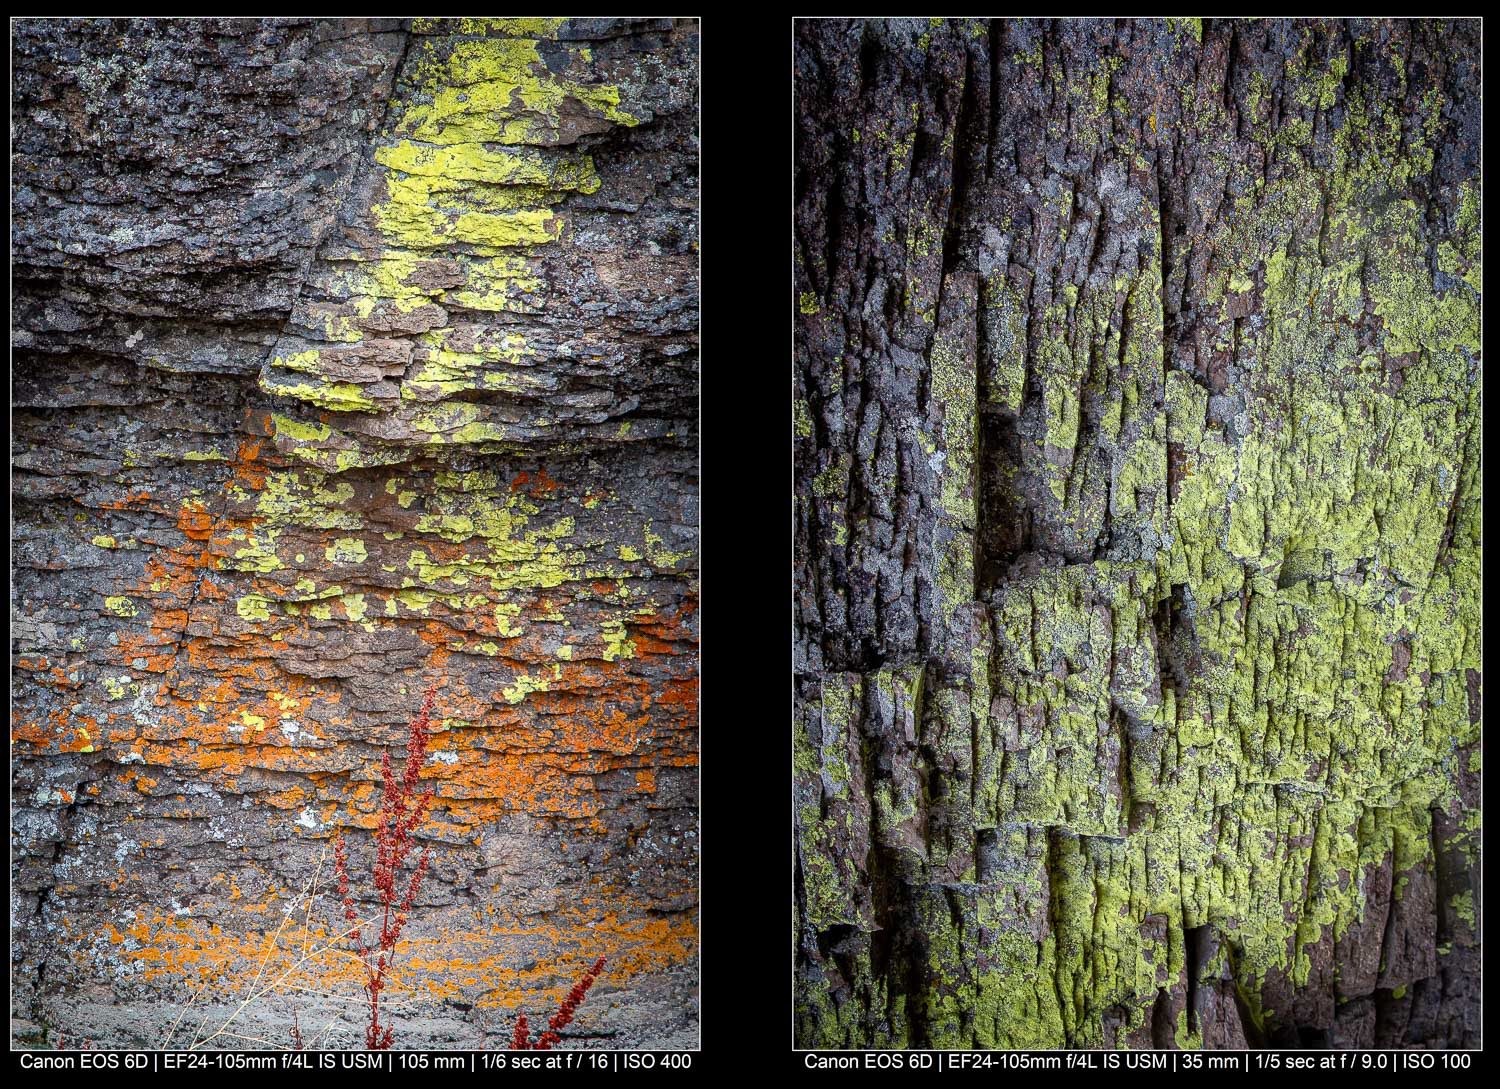 Abstract Landscape Photography - Look for the details